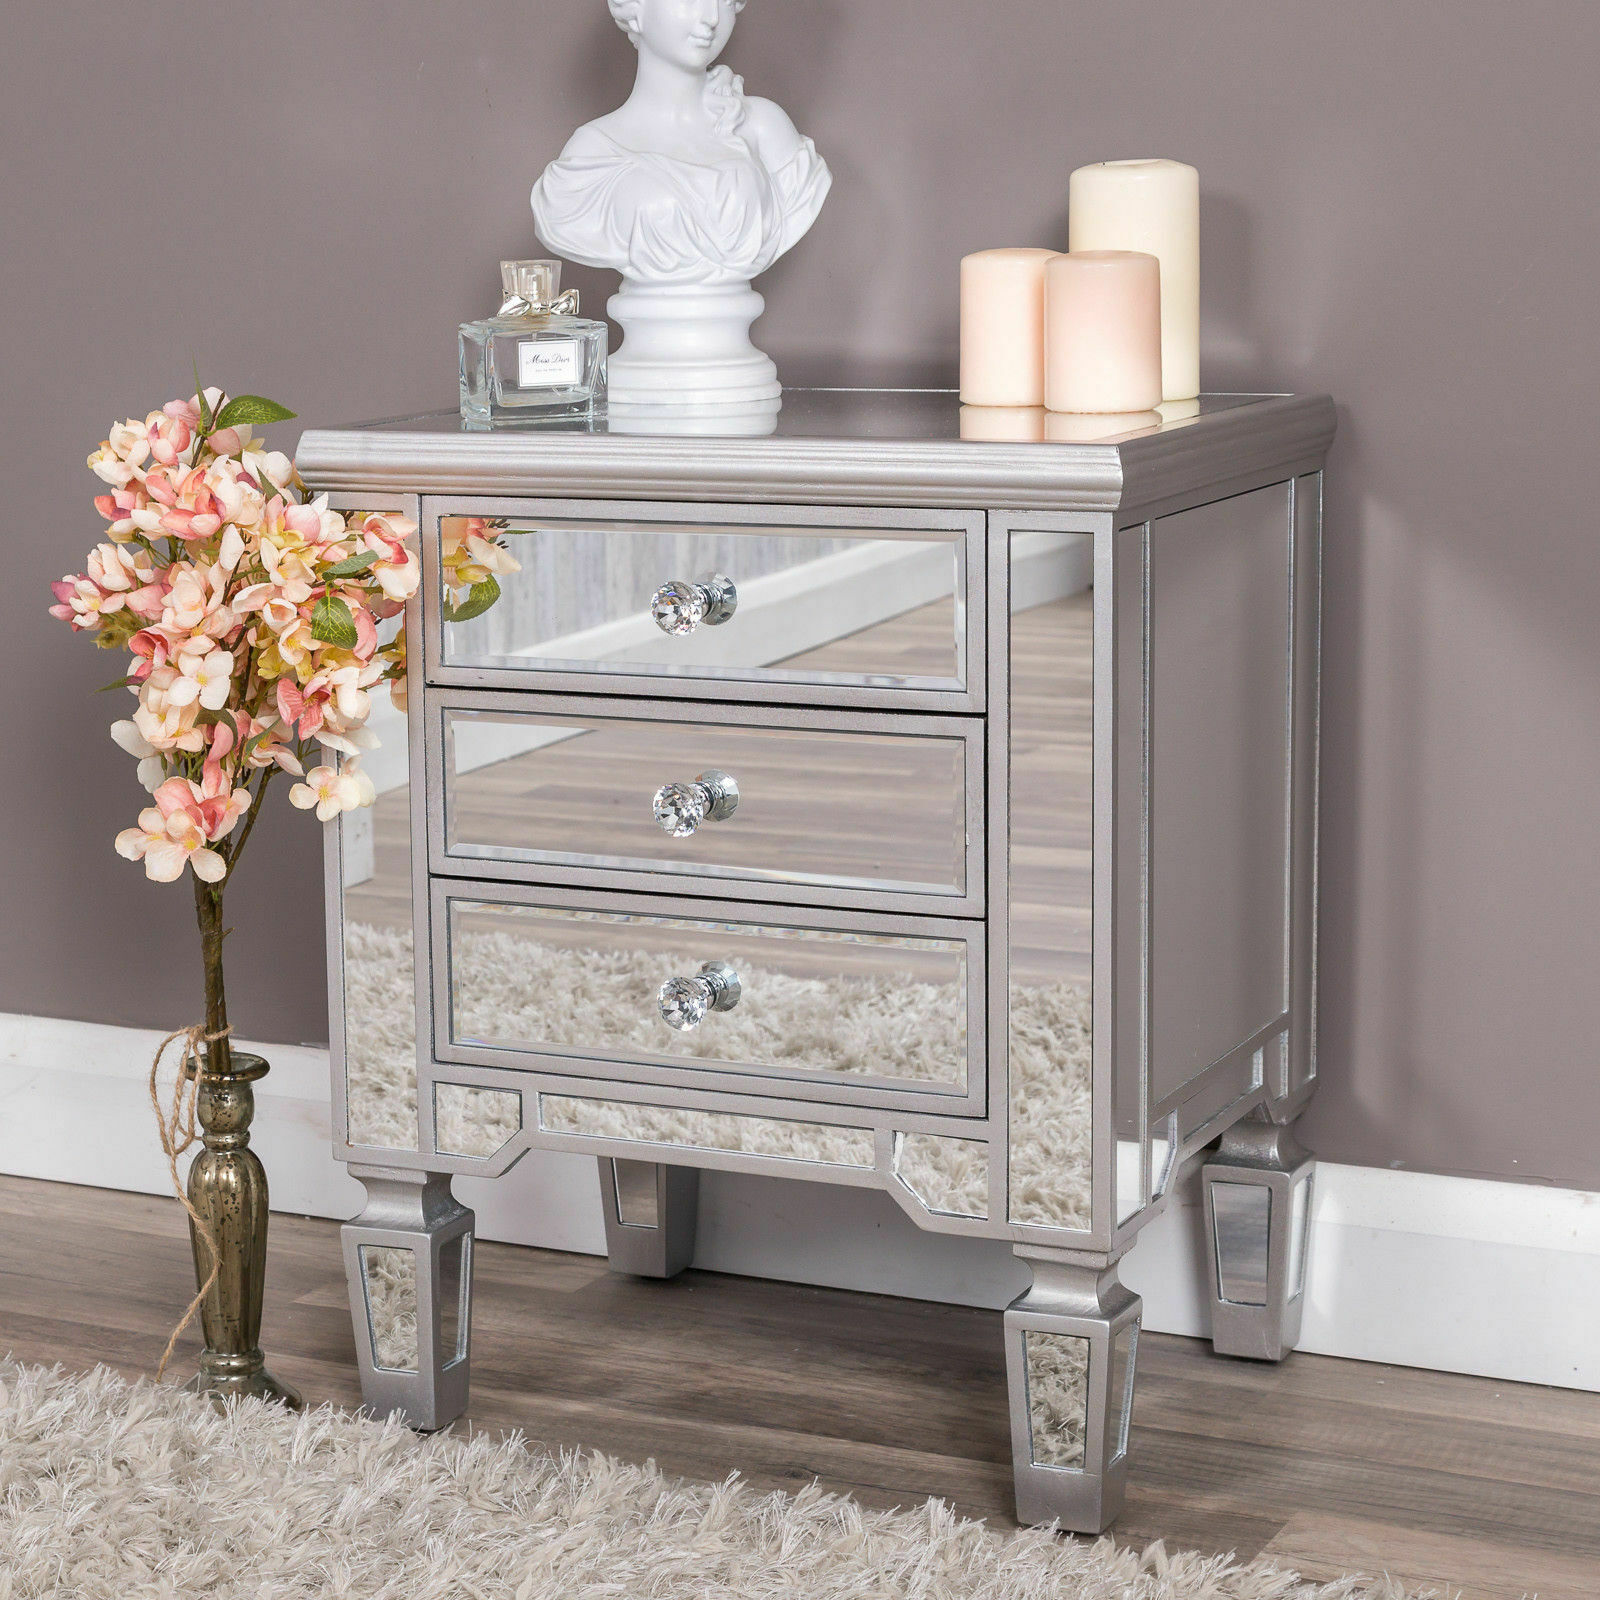 Details About Silver Mirrored Bedside Table Chest Venetian Bedroom Furniture Glass Cabinet